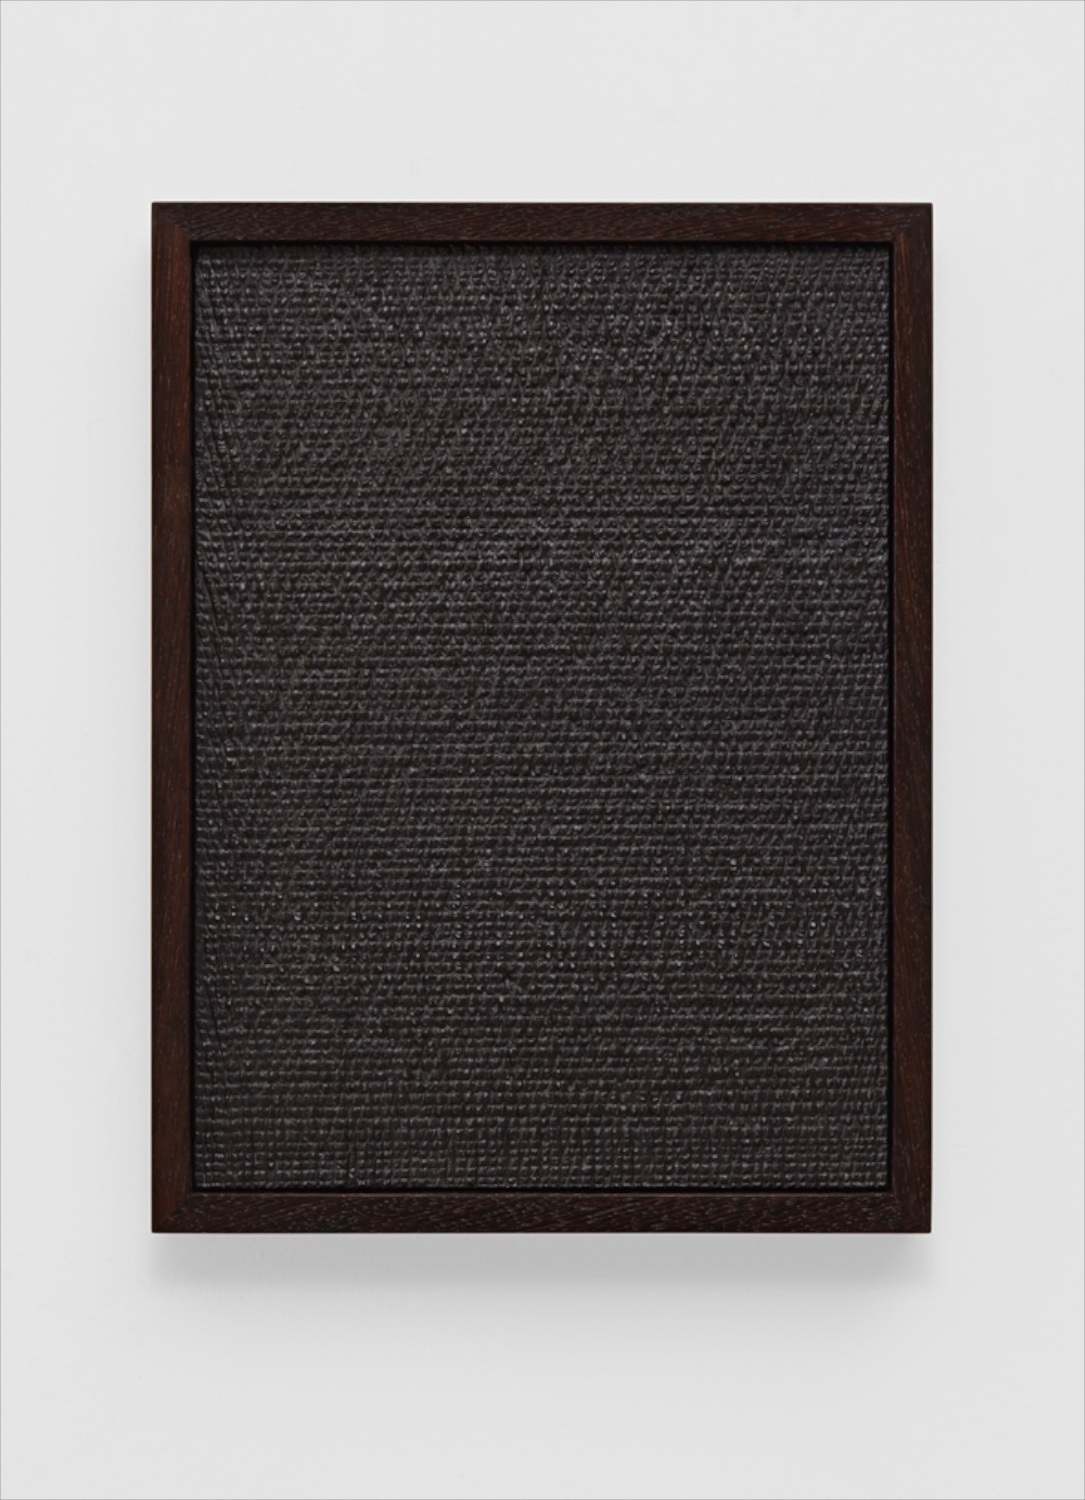 Anthony Pearson  Untitled (Etched Plaster)  2014 Medium coated pigmented hydrocal in tung oiled wenge frame 16 ¼h x 12 ¼w x 2d in AP345